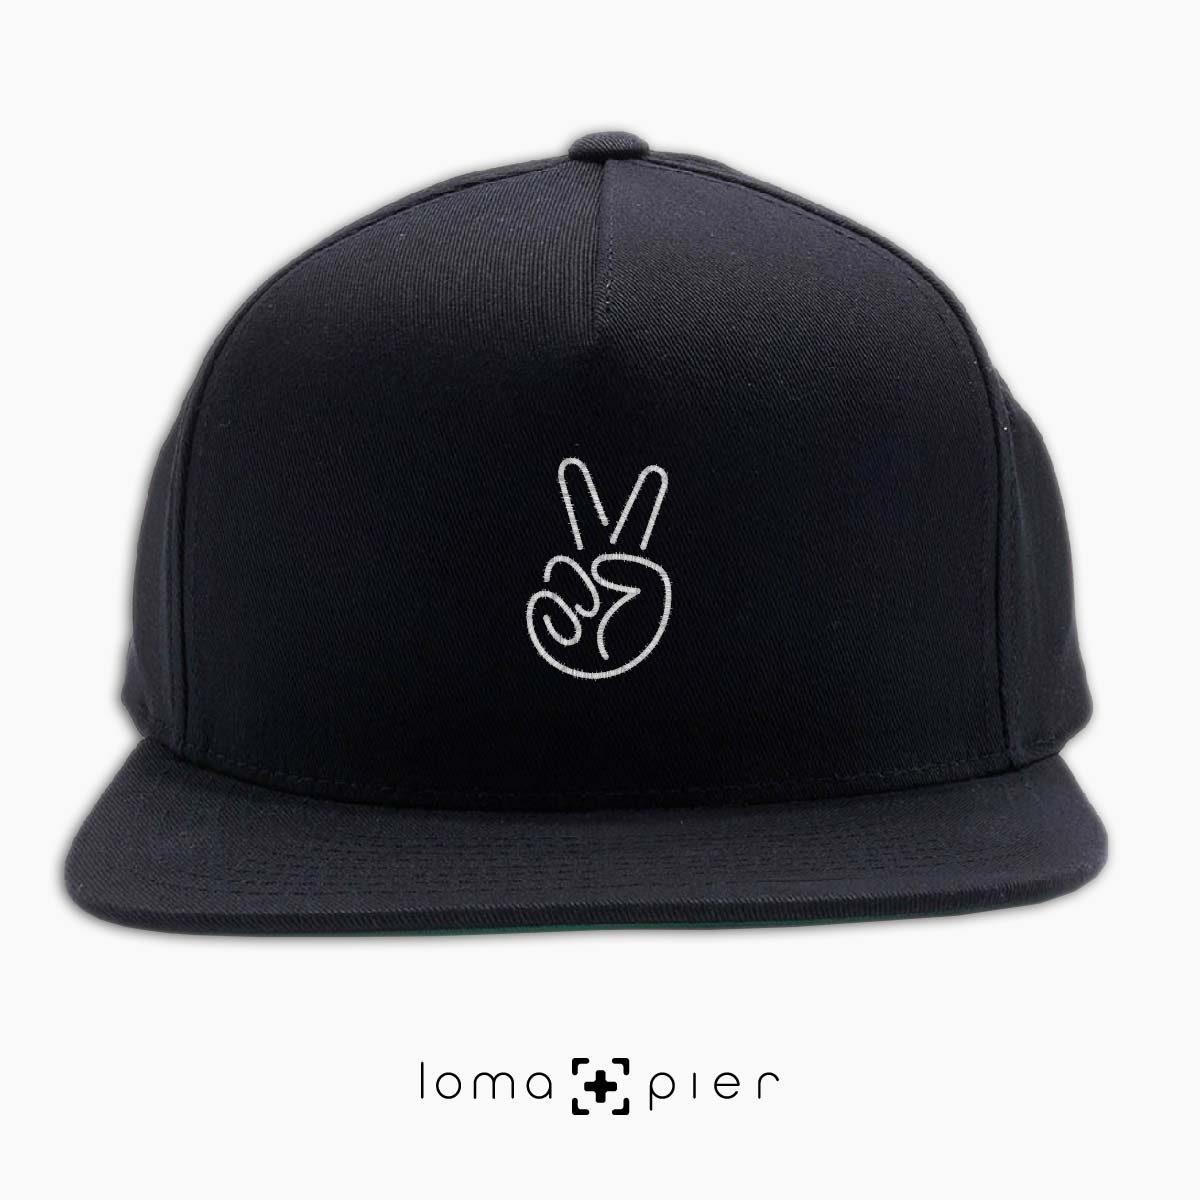 PEACE HAND icon embroidered on a black classic snapback hat with white thread by loma+pier hat store